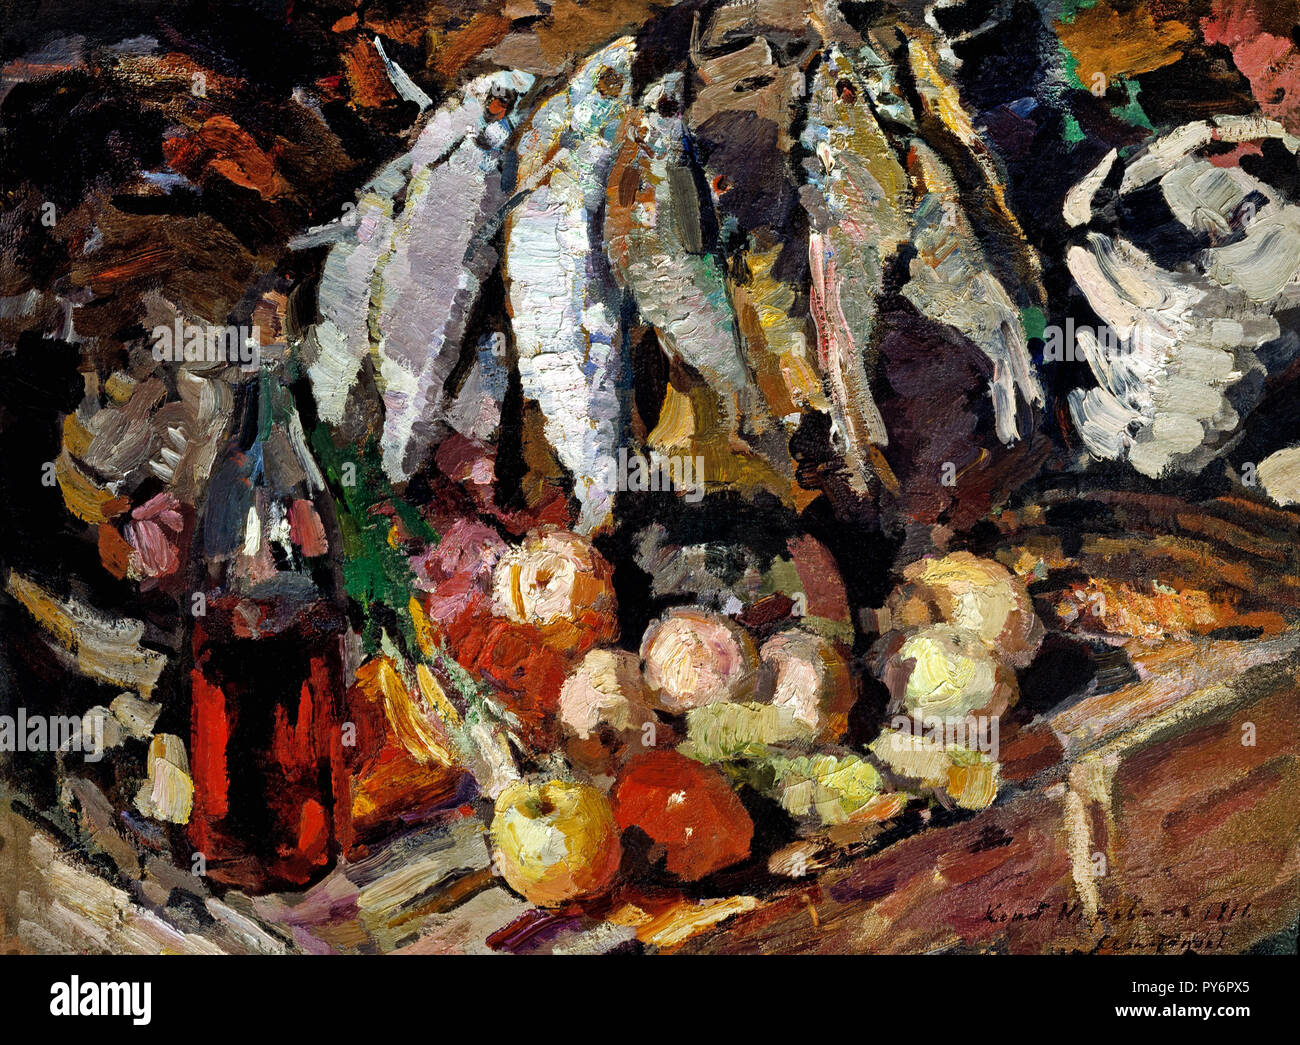 Konstantin Korovin, Fish, Wine, Fruit 1916 Oil on canvas, Tretyakov Gallery, Moscow, Russia. - Stock Image